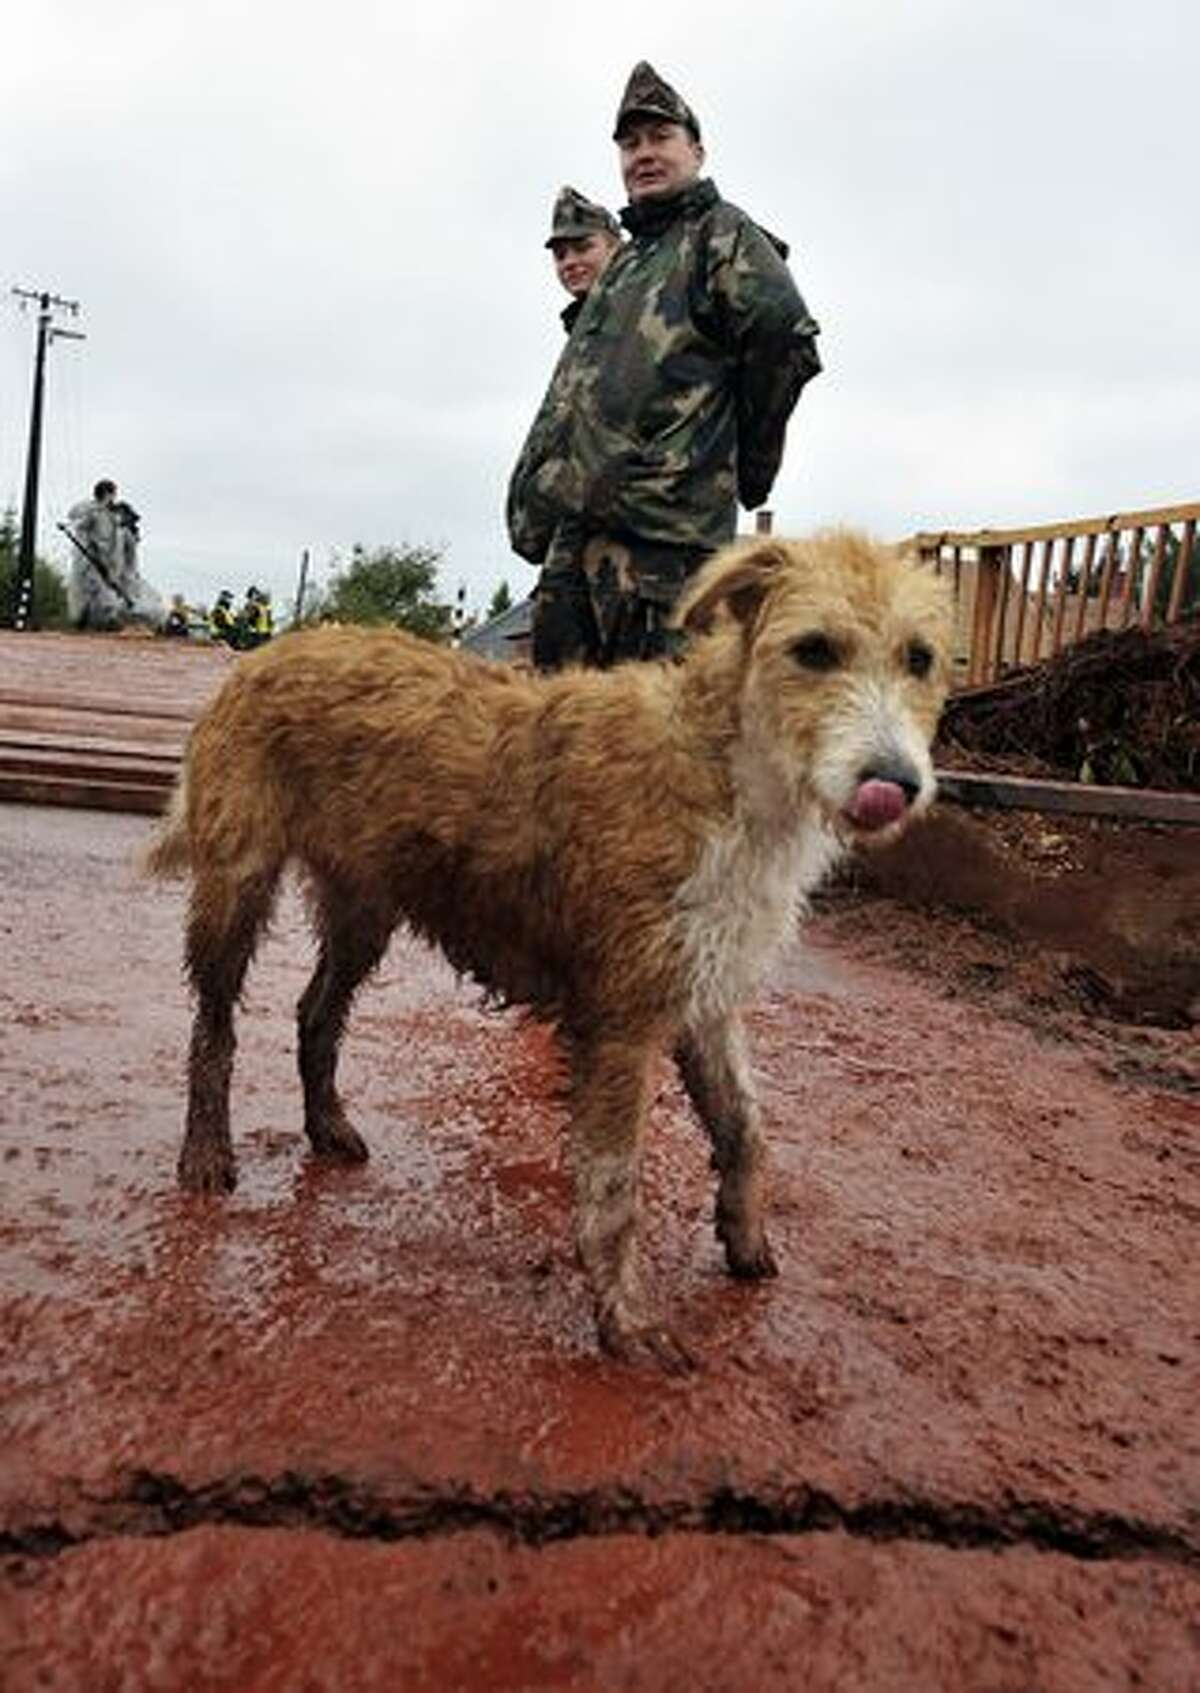 A dog walks off a bridge in Kolontar, Hungary, on October 6, 2010, where the army had to build a temporary bridge to replace one that was swept away after a wave of toxic red mud swept through the small village, killing four and injuring scores more.